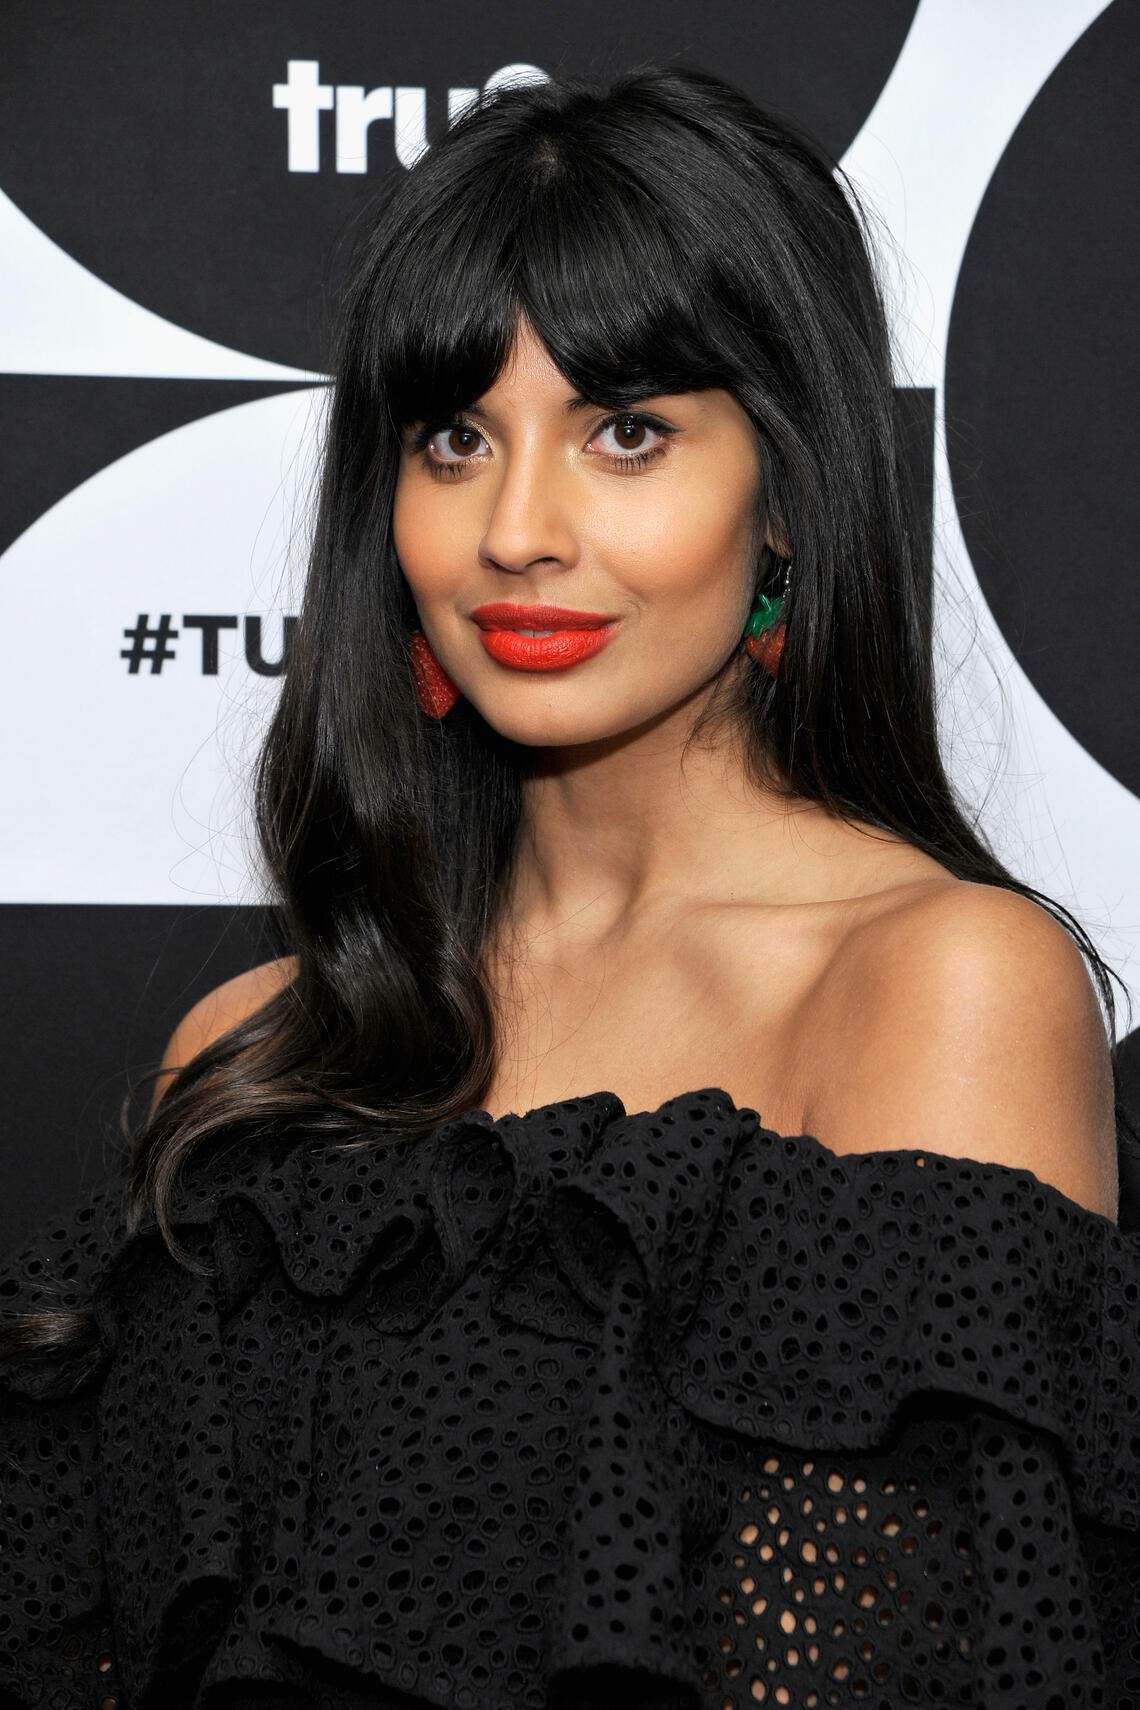 PASADENA, CA - FEBRUARY 11:  Jameela Jamil of 'The Misery Index' poses in the green room during the TCA Turner Winter Press Tour 2019 at The Langham Huntington Hotel and Spa on February 11, 2019 in Pasadena, California. 505702  (Photo by John Sciulli/Getty Images for Turner)